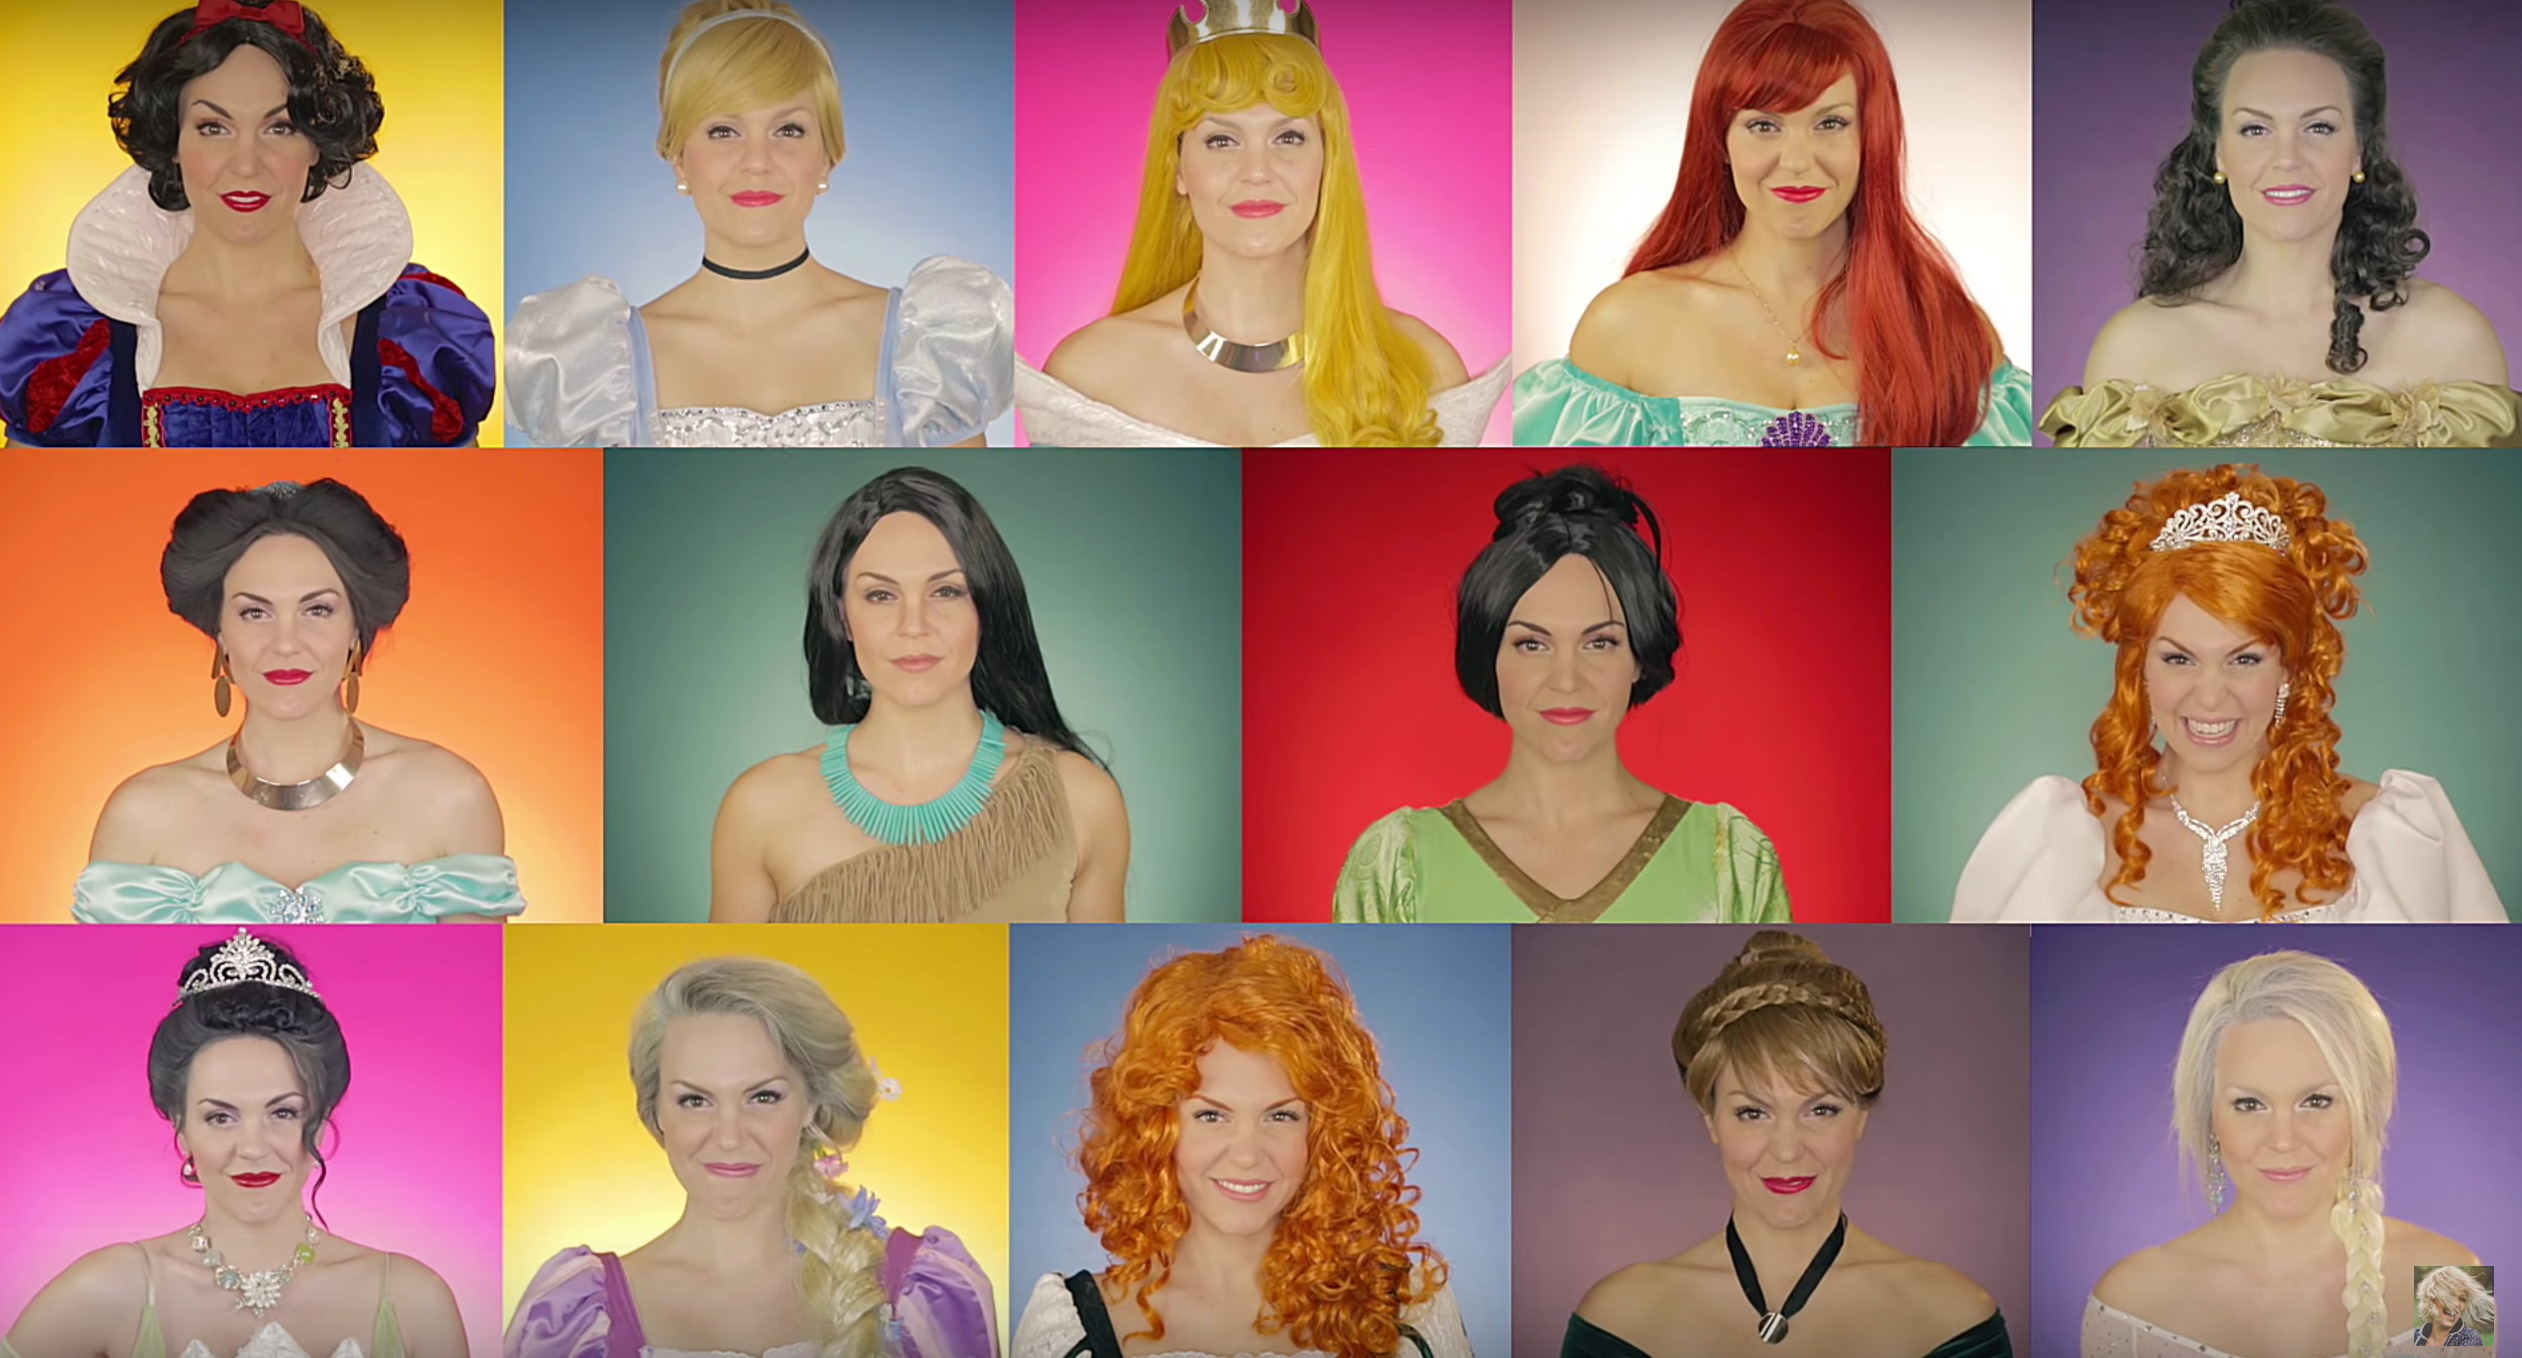 This woman's medley of all the Disney princess songs perfectly illustrates how the princesses have evolved